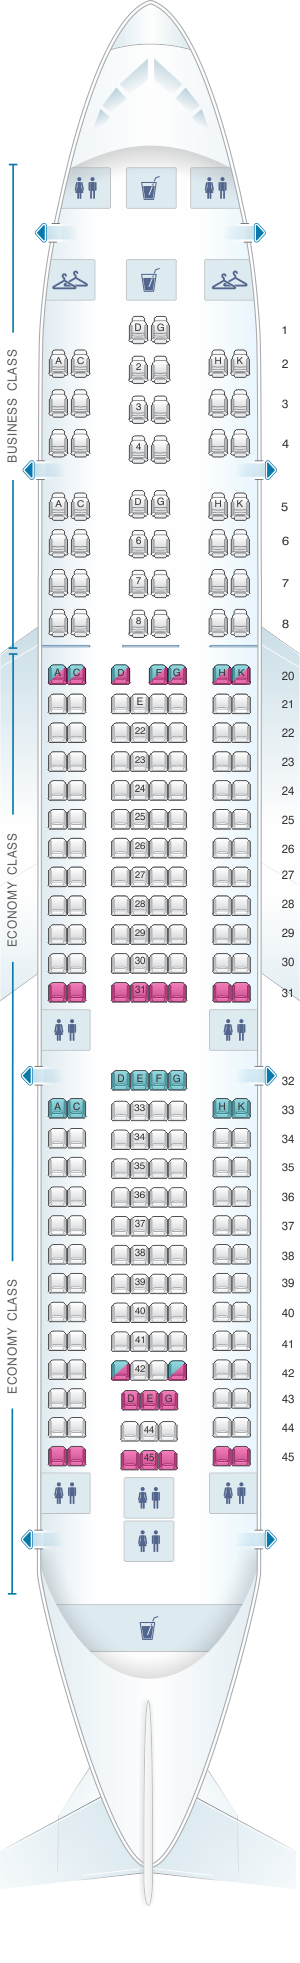 Seat map for MEA Airbus A330 200